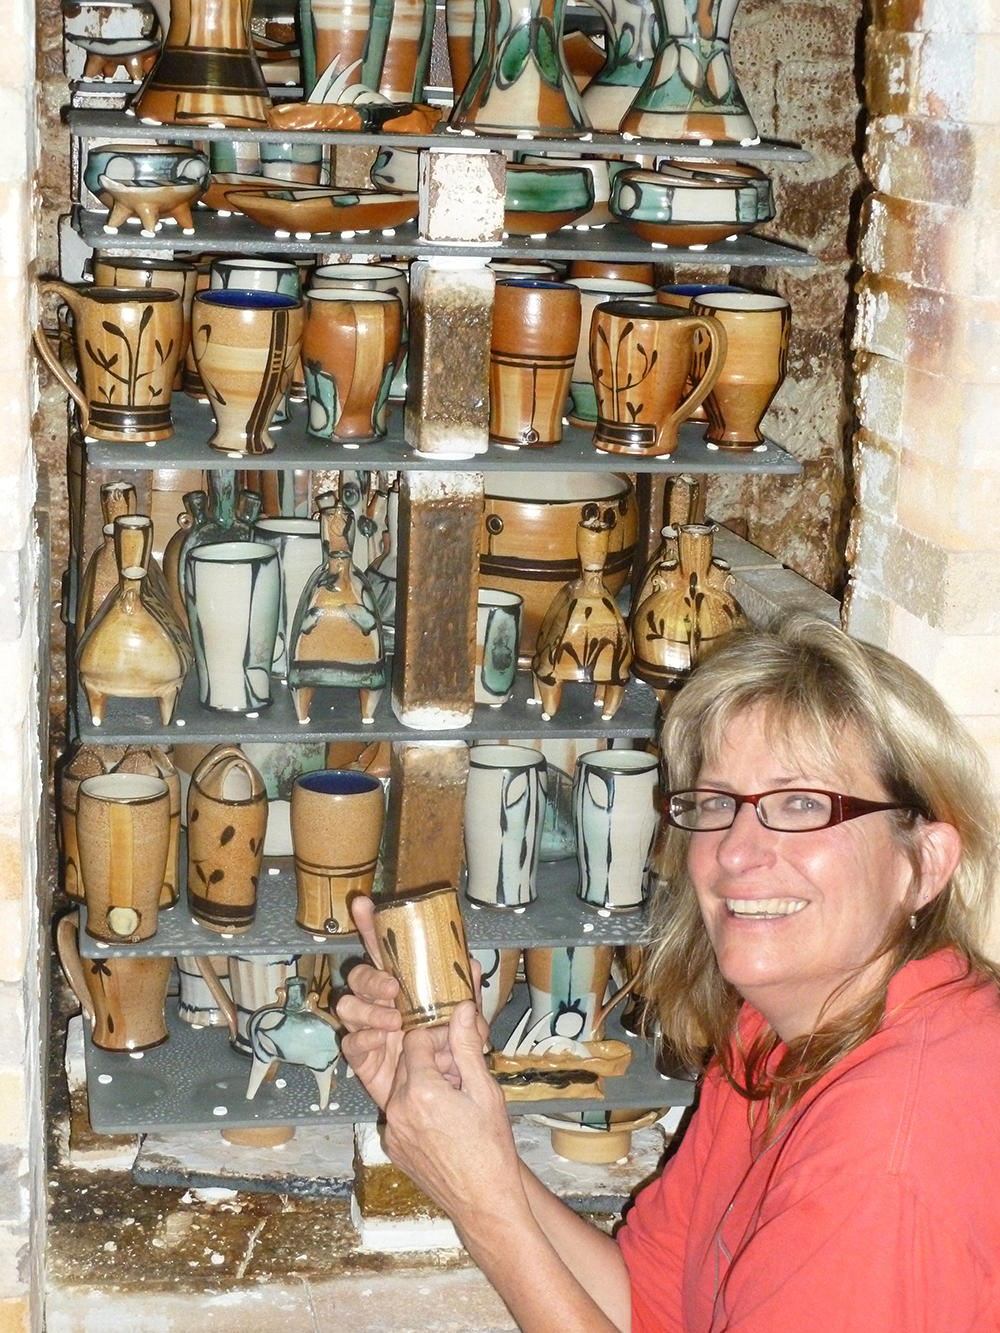 Suze Lindsay, potter, smiling in front of salt kiln.